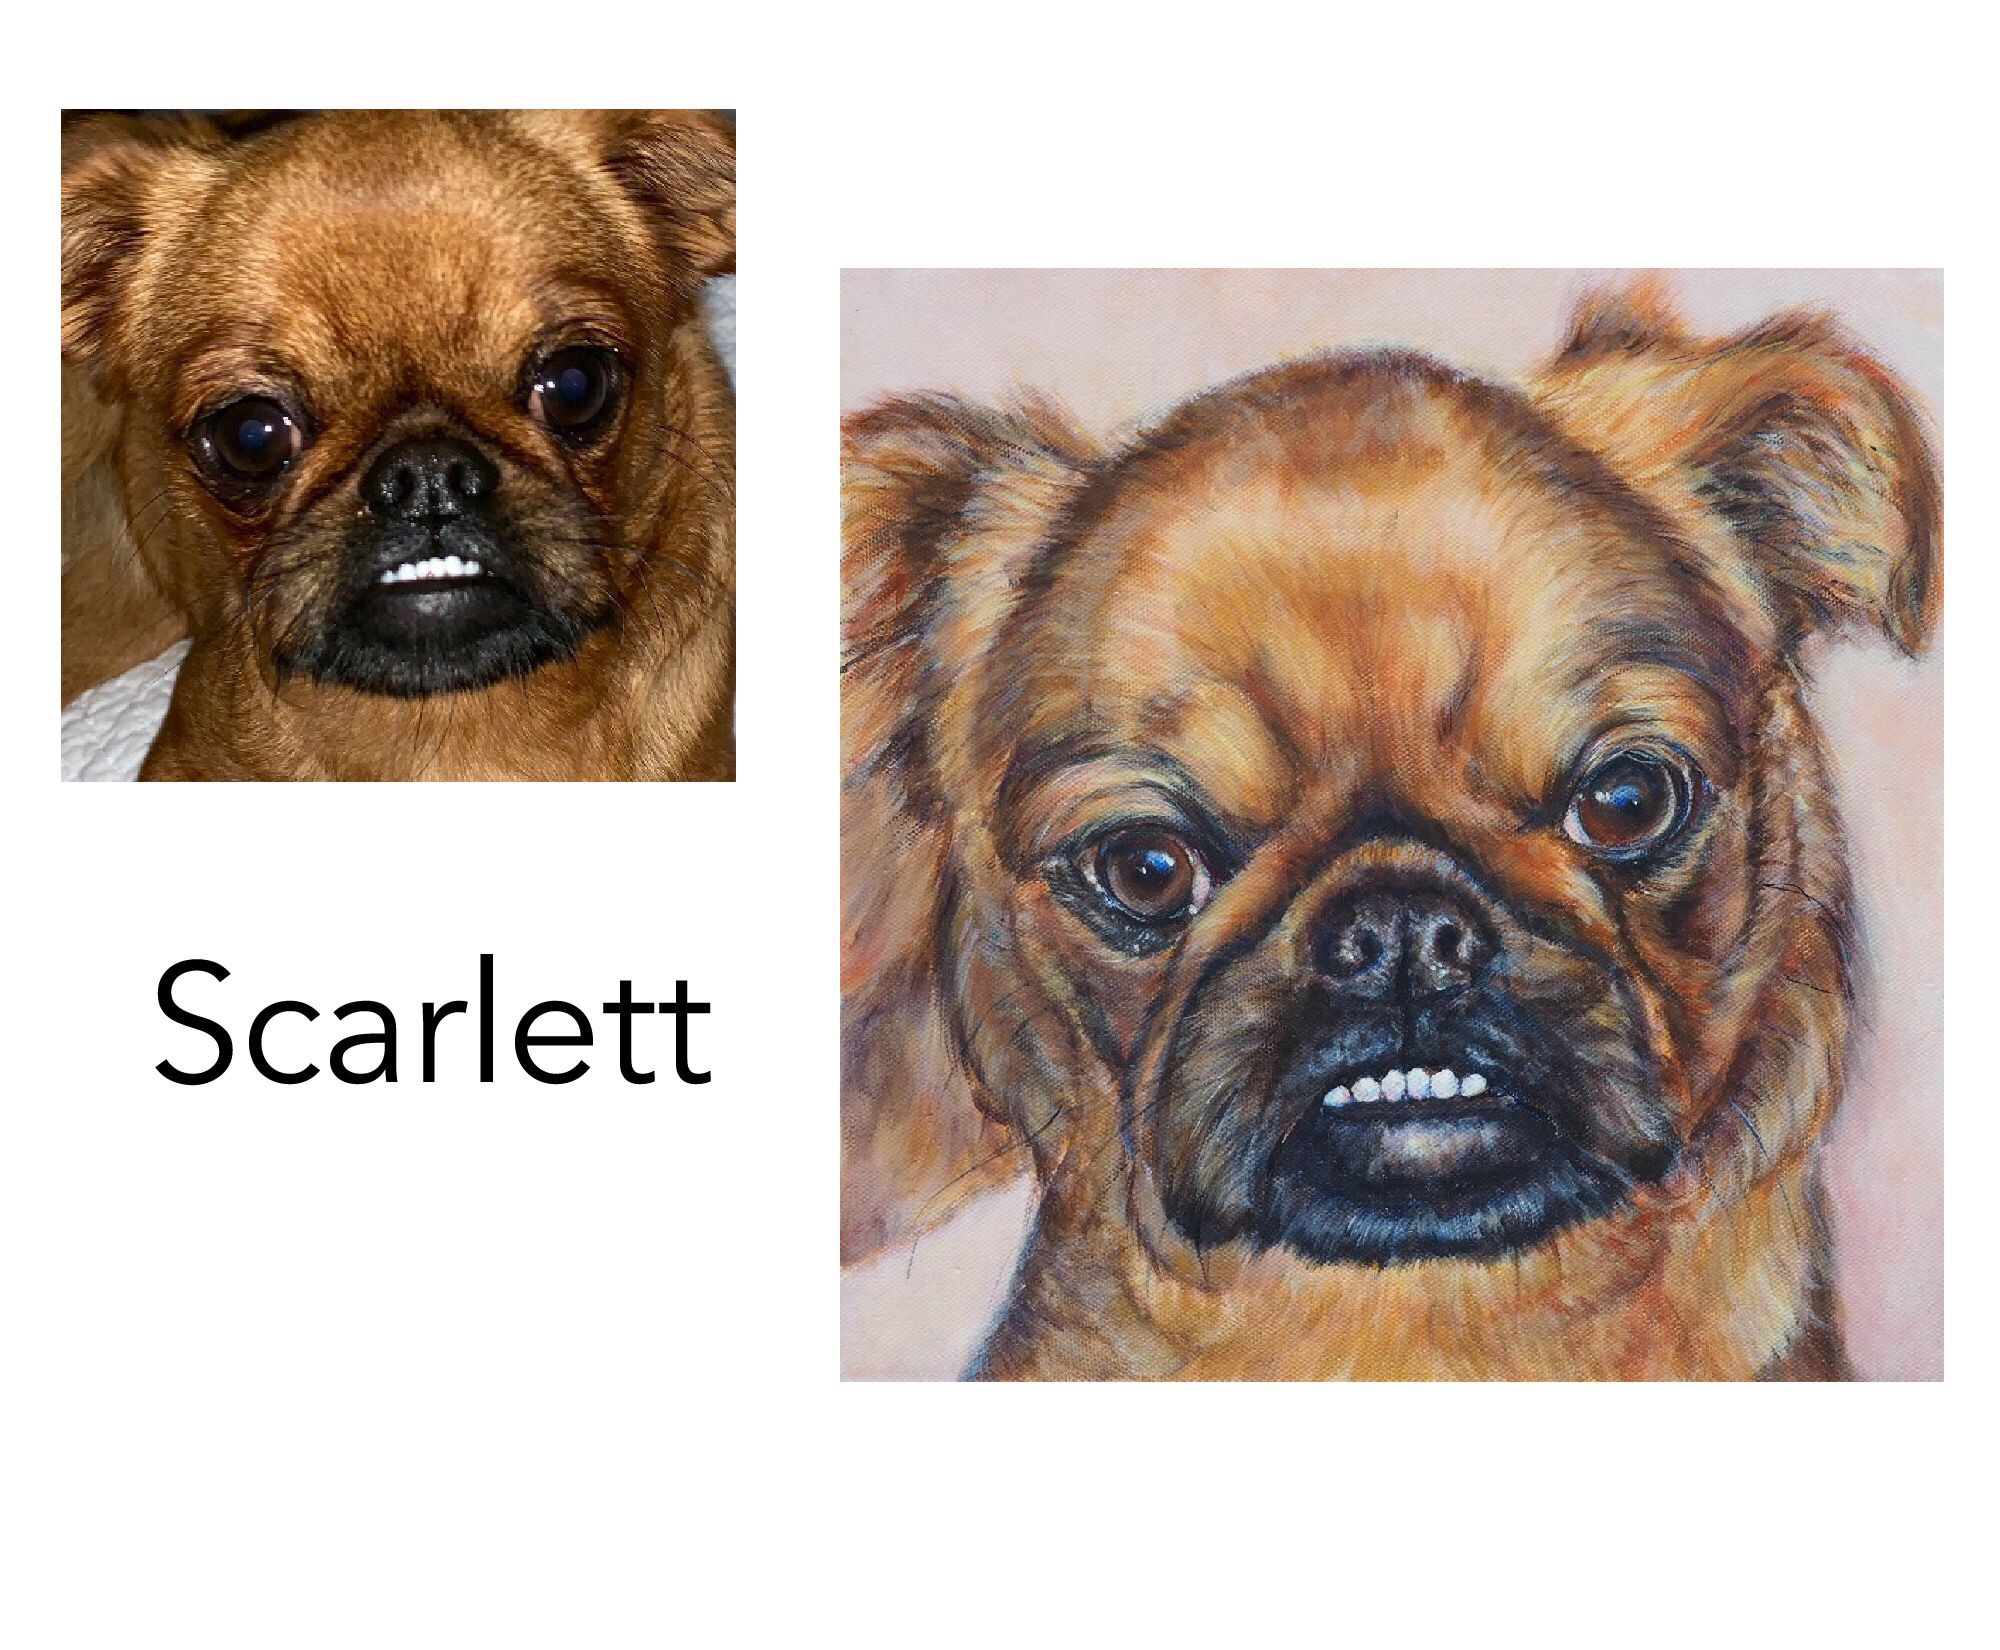 """Custom Dog Portrait - Brussels GriffonAcrylic on Canvas, 30 x 30cm ( 12x12"""")Sydney, NSW———————————-Scarlett is a lovely young Brussels Griffon with an unforgettable underbite. She is the sixth custom dog portrait painted for her  loving family."""